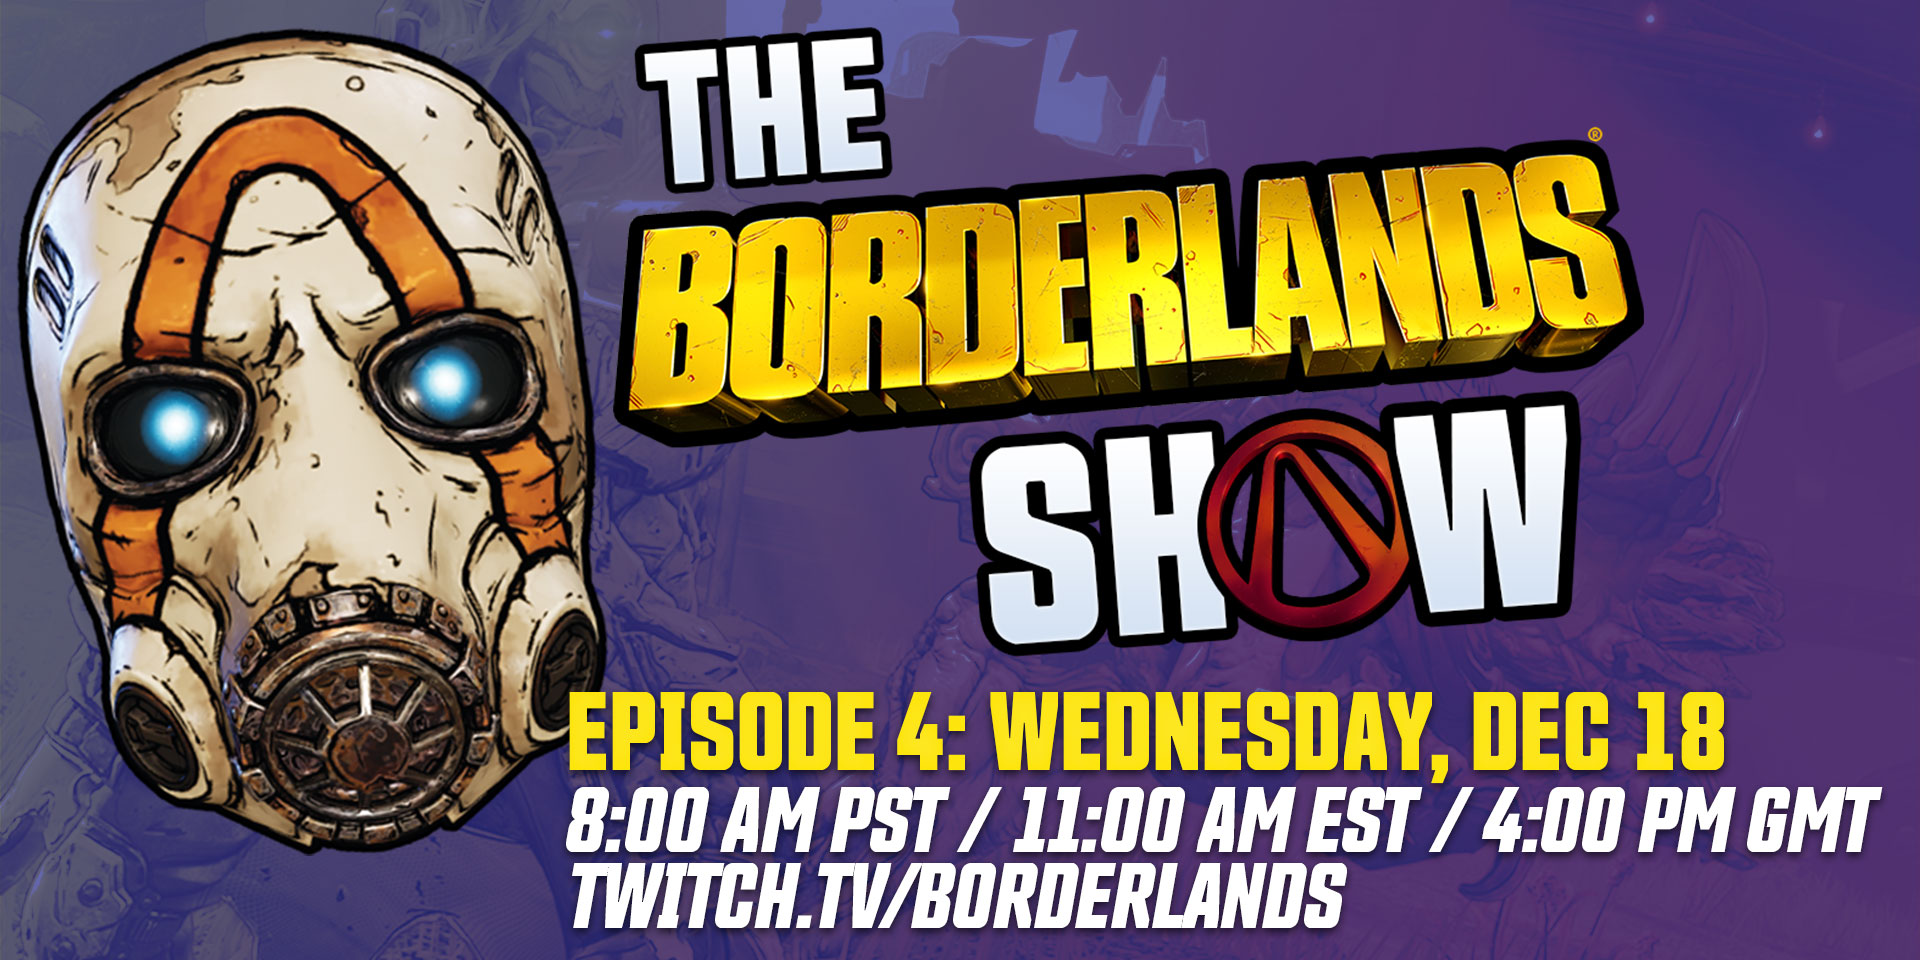 8 Pst To Aest tune in for the borderlands show episode 4 on december 18